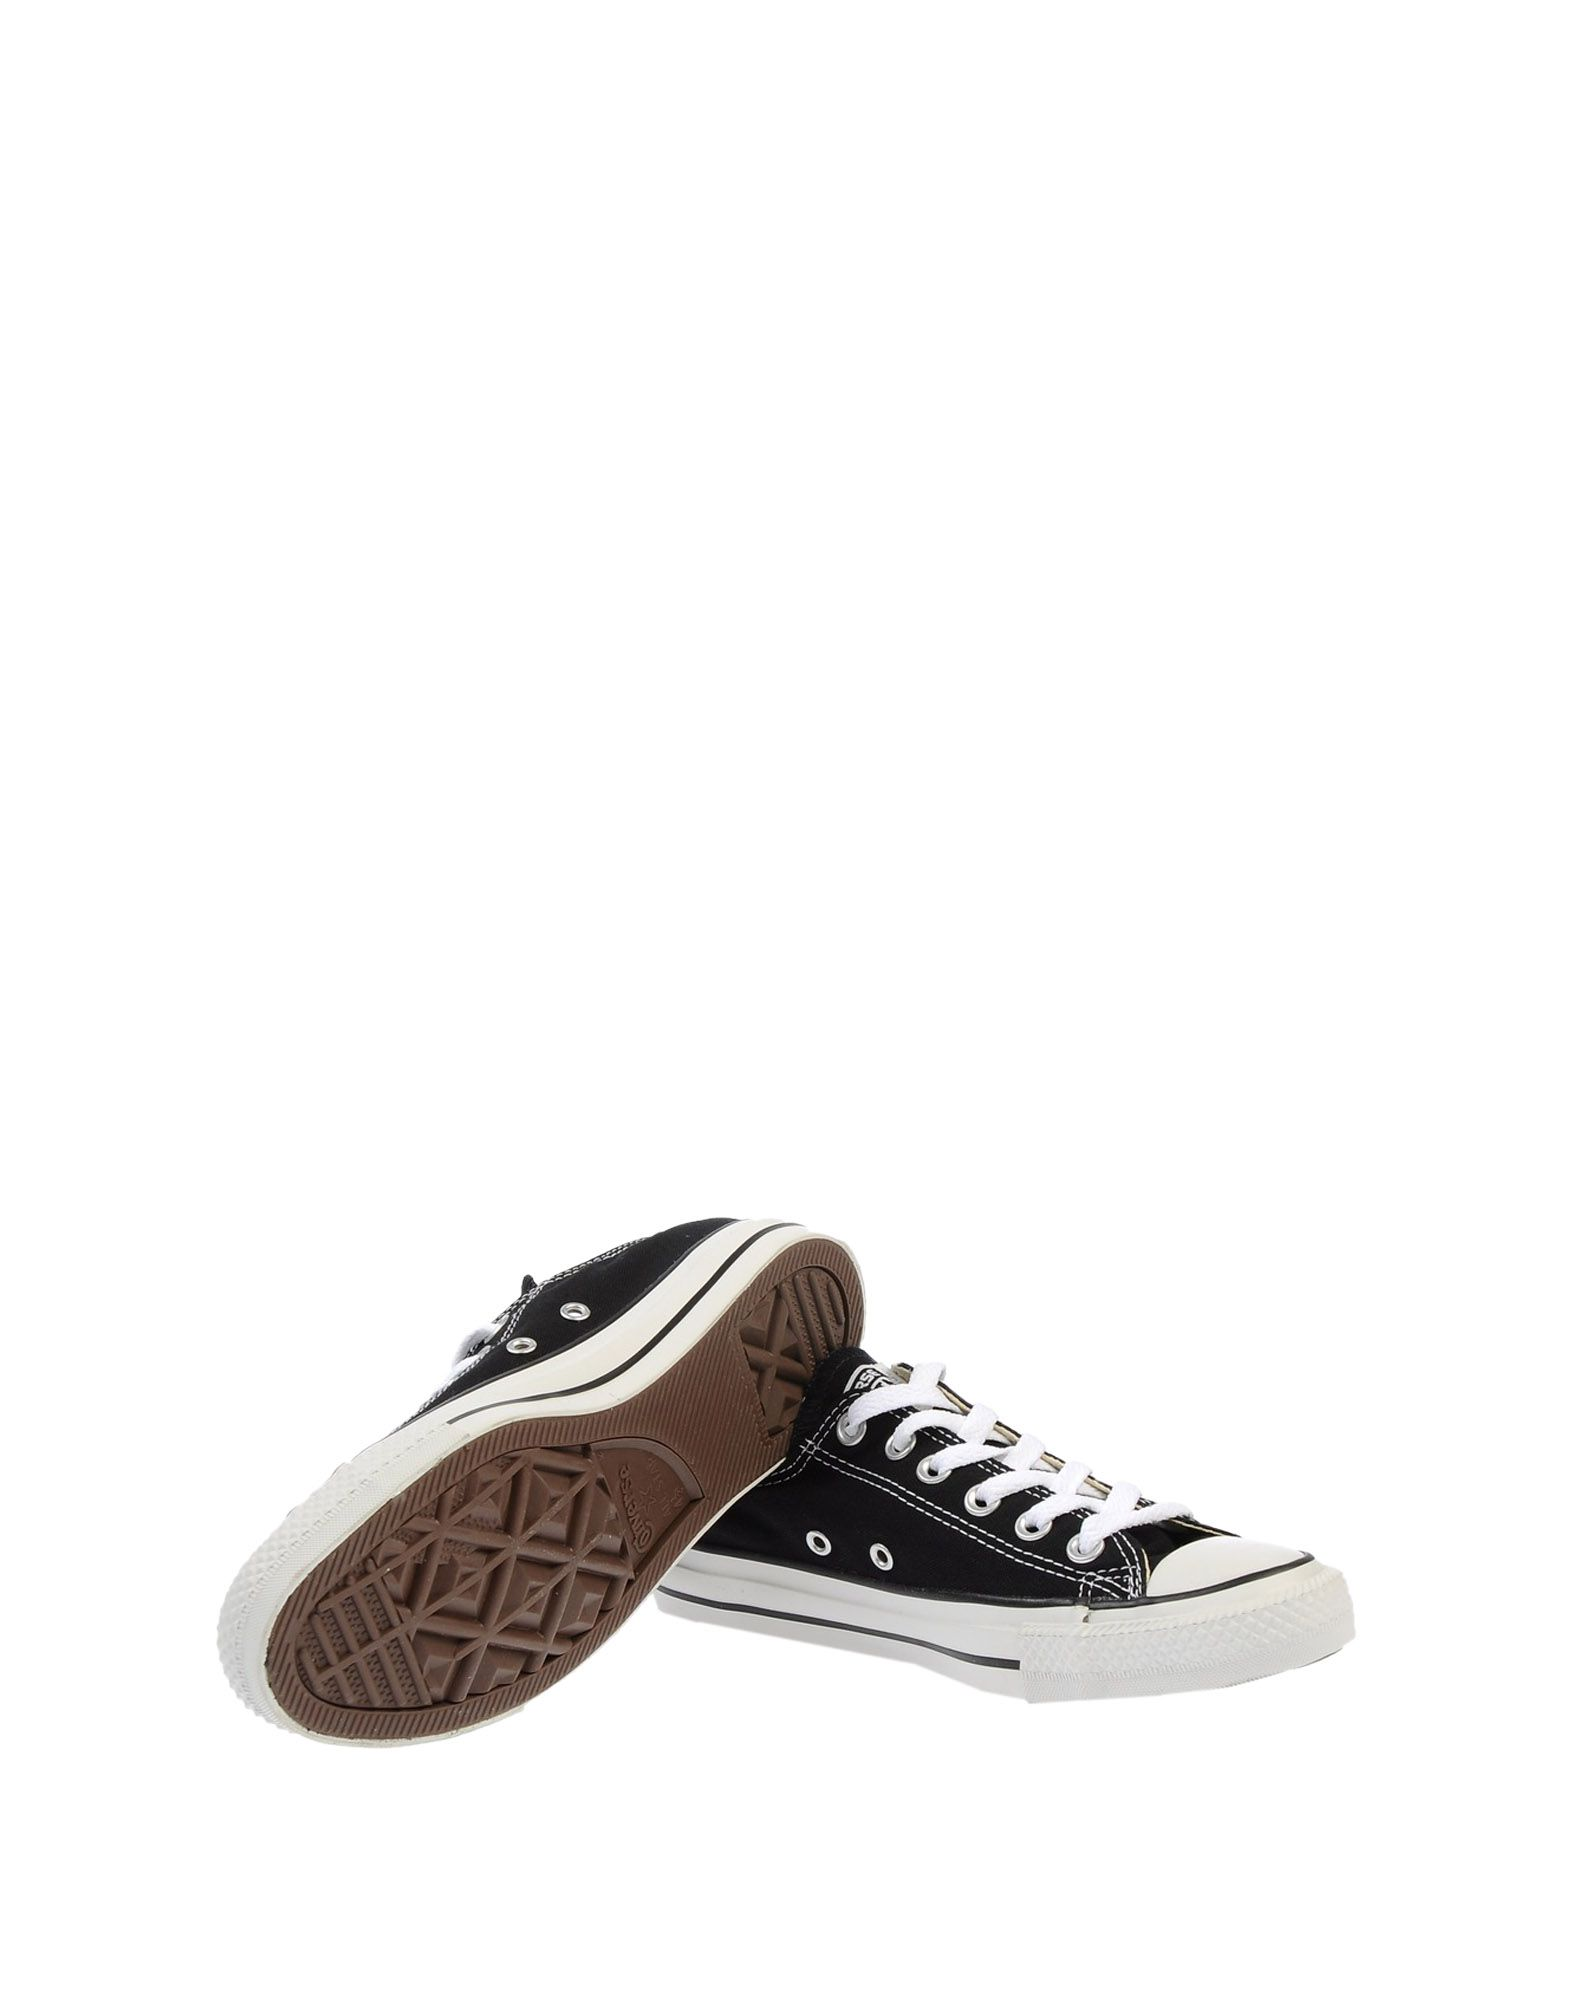 Sneakers Converse All Star All Star Hi-Ox - Femme - Sneakers Converse All Star sur